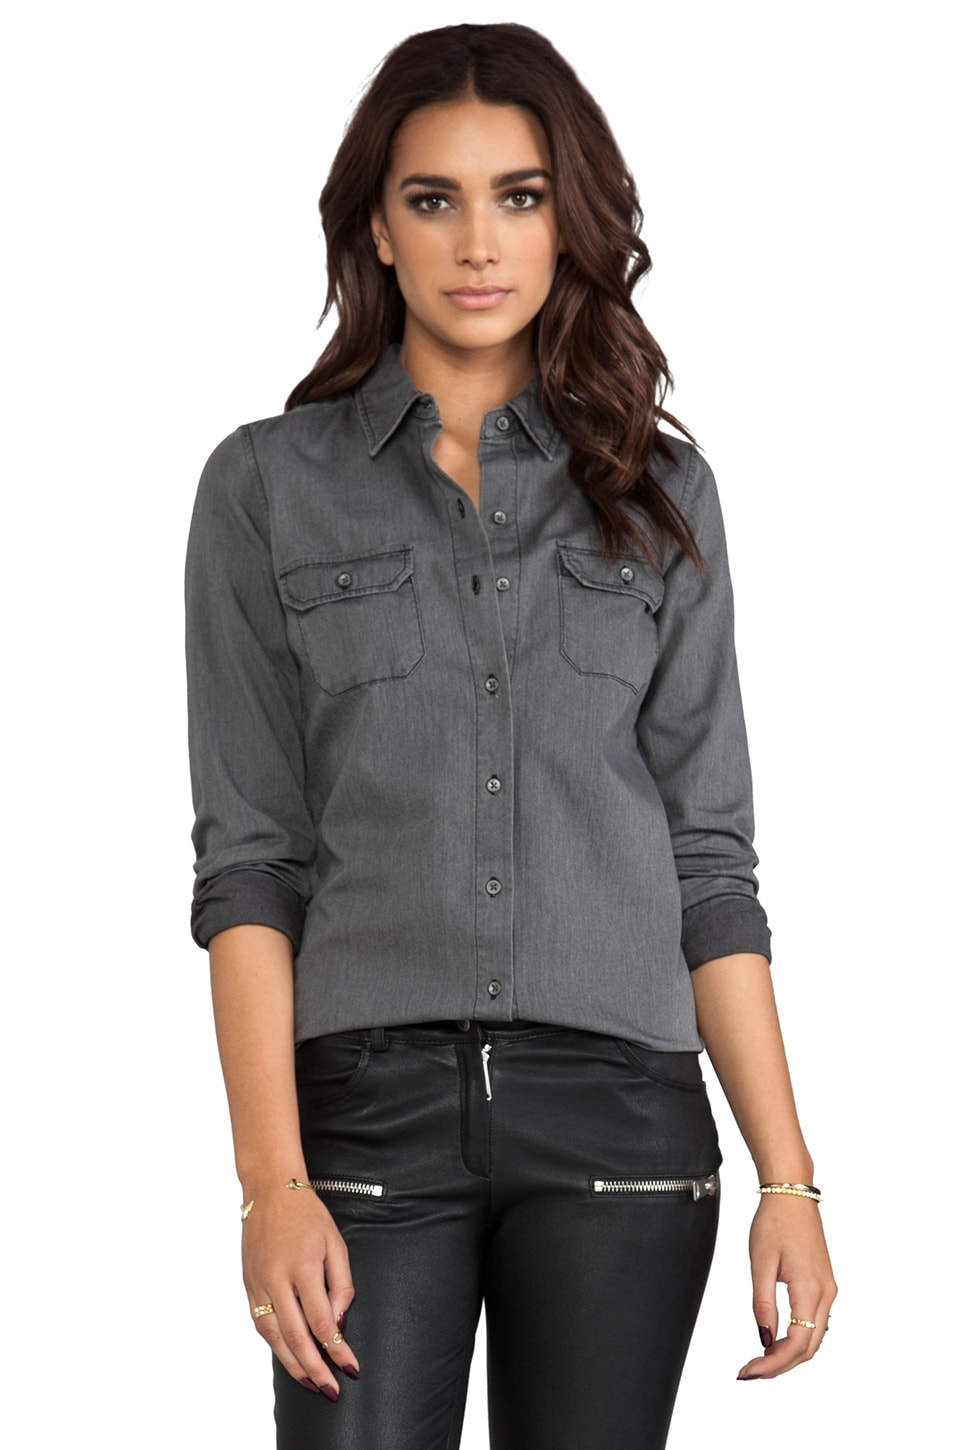 AG Adriano Goldschmied Dakota Chambray Shirt in Ash